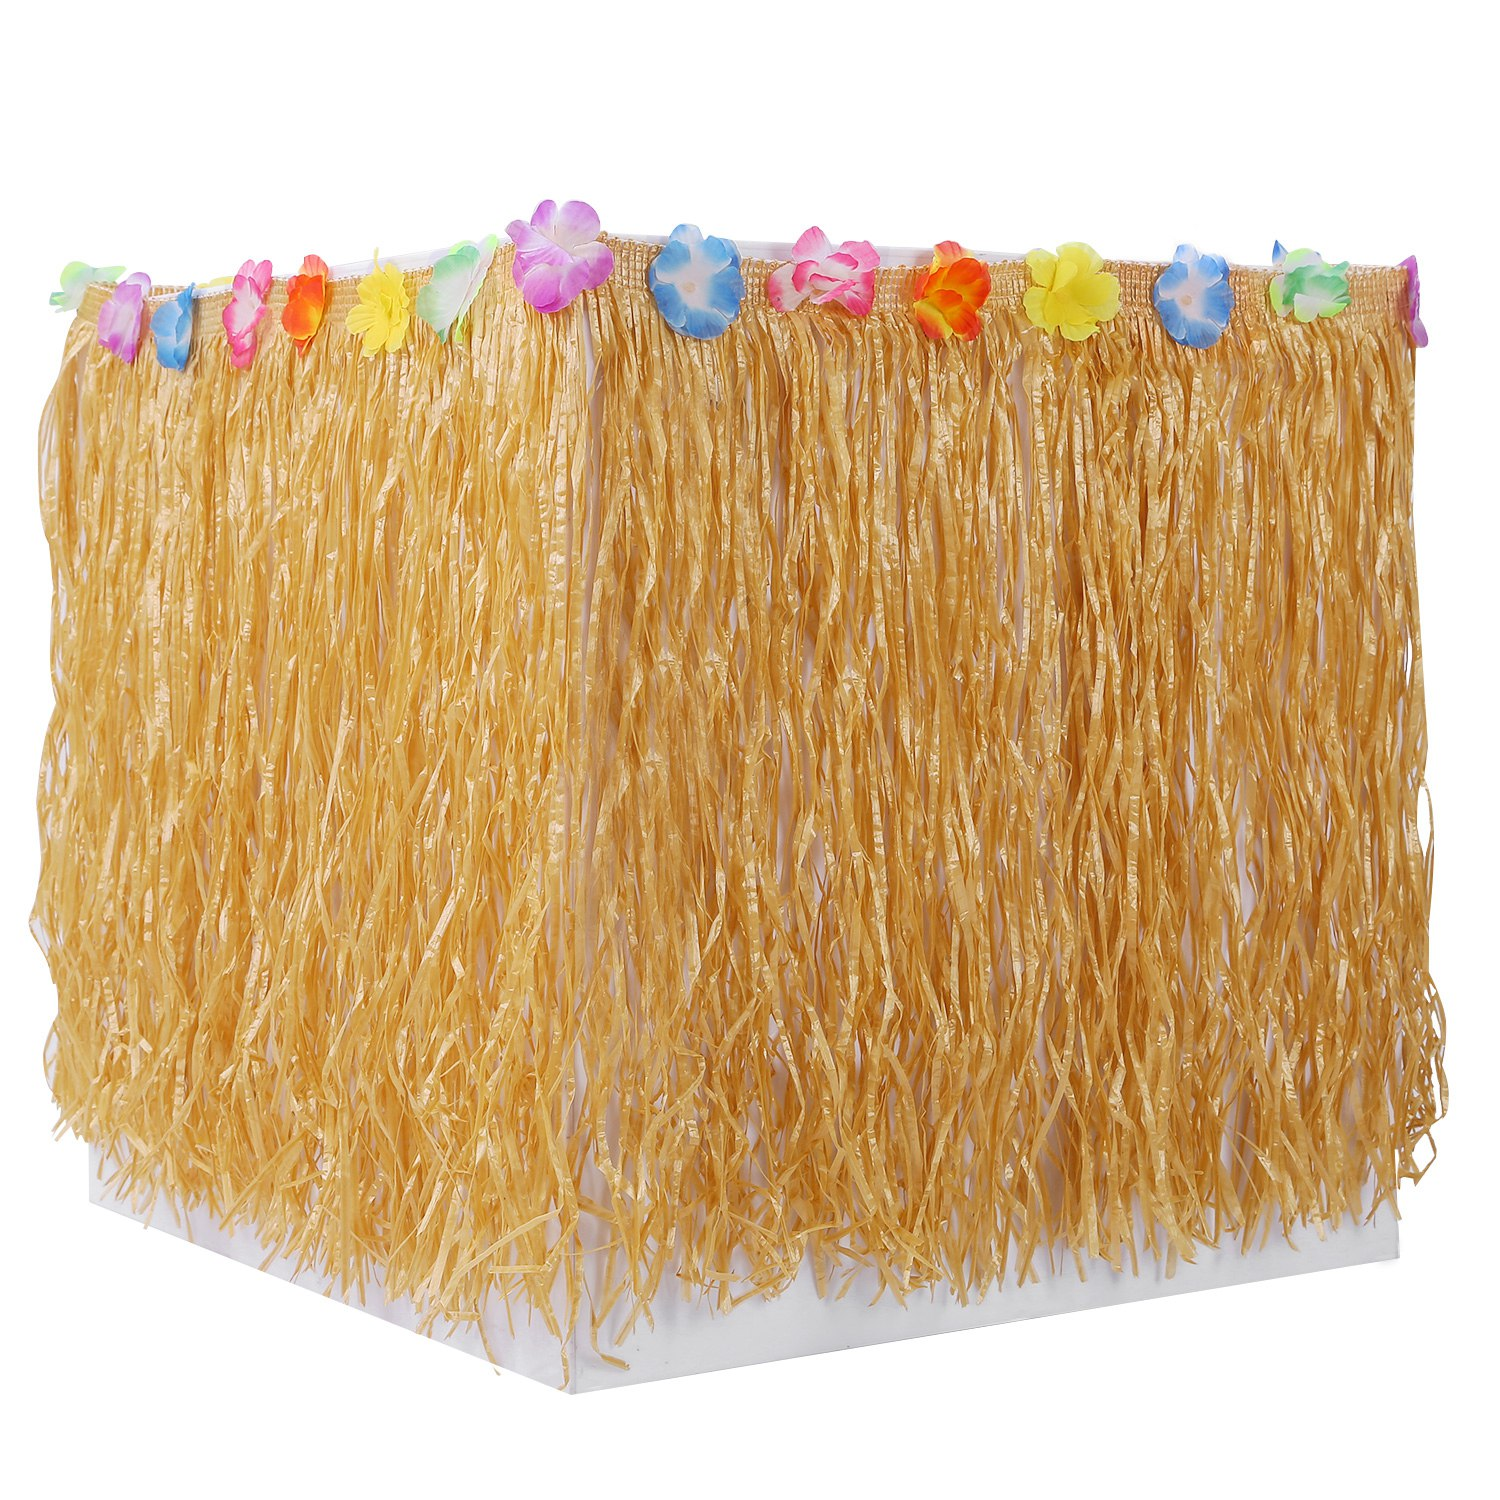 Grass Table Skirt Hawaiian Luau Party Decorations Supplies